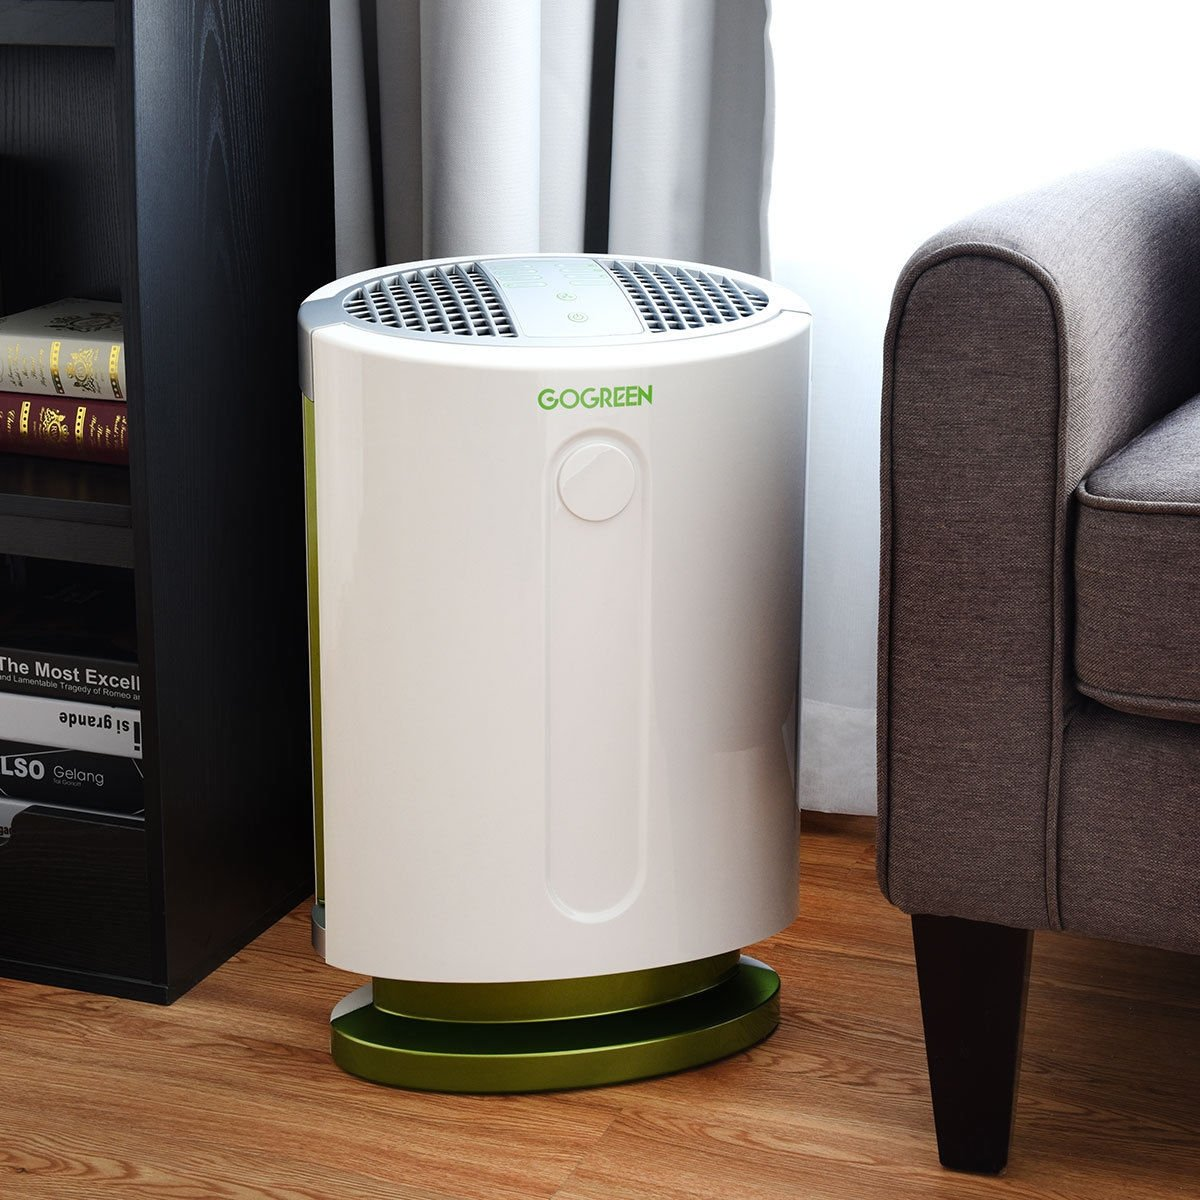 3-in-1 HEPA Filter Particle Allergies Eliminator Air Purifier